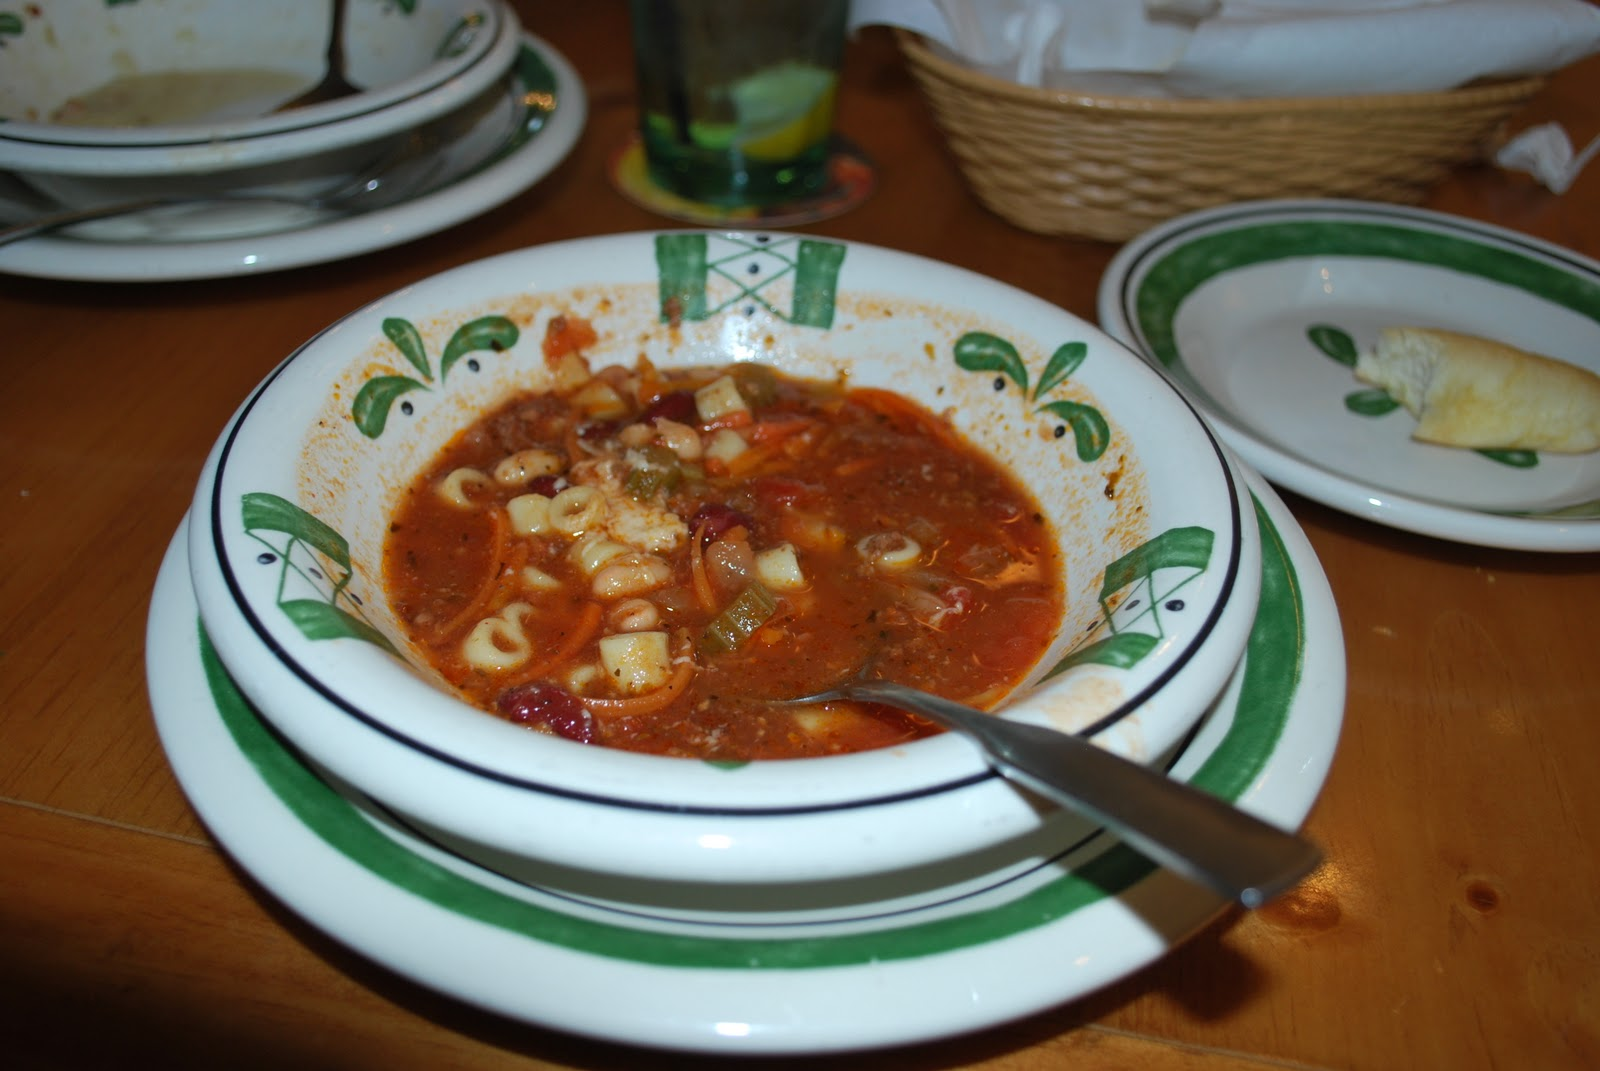 Olive Garden Menu Pdf: Stupendous Soups Are On The Menu At Olive Garden